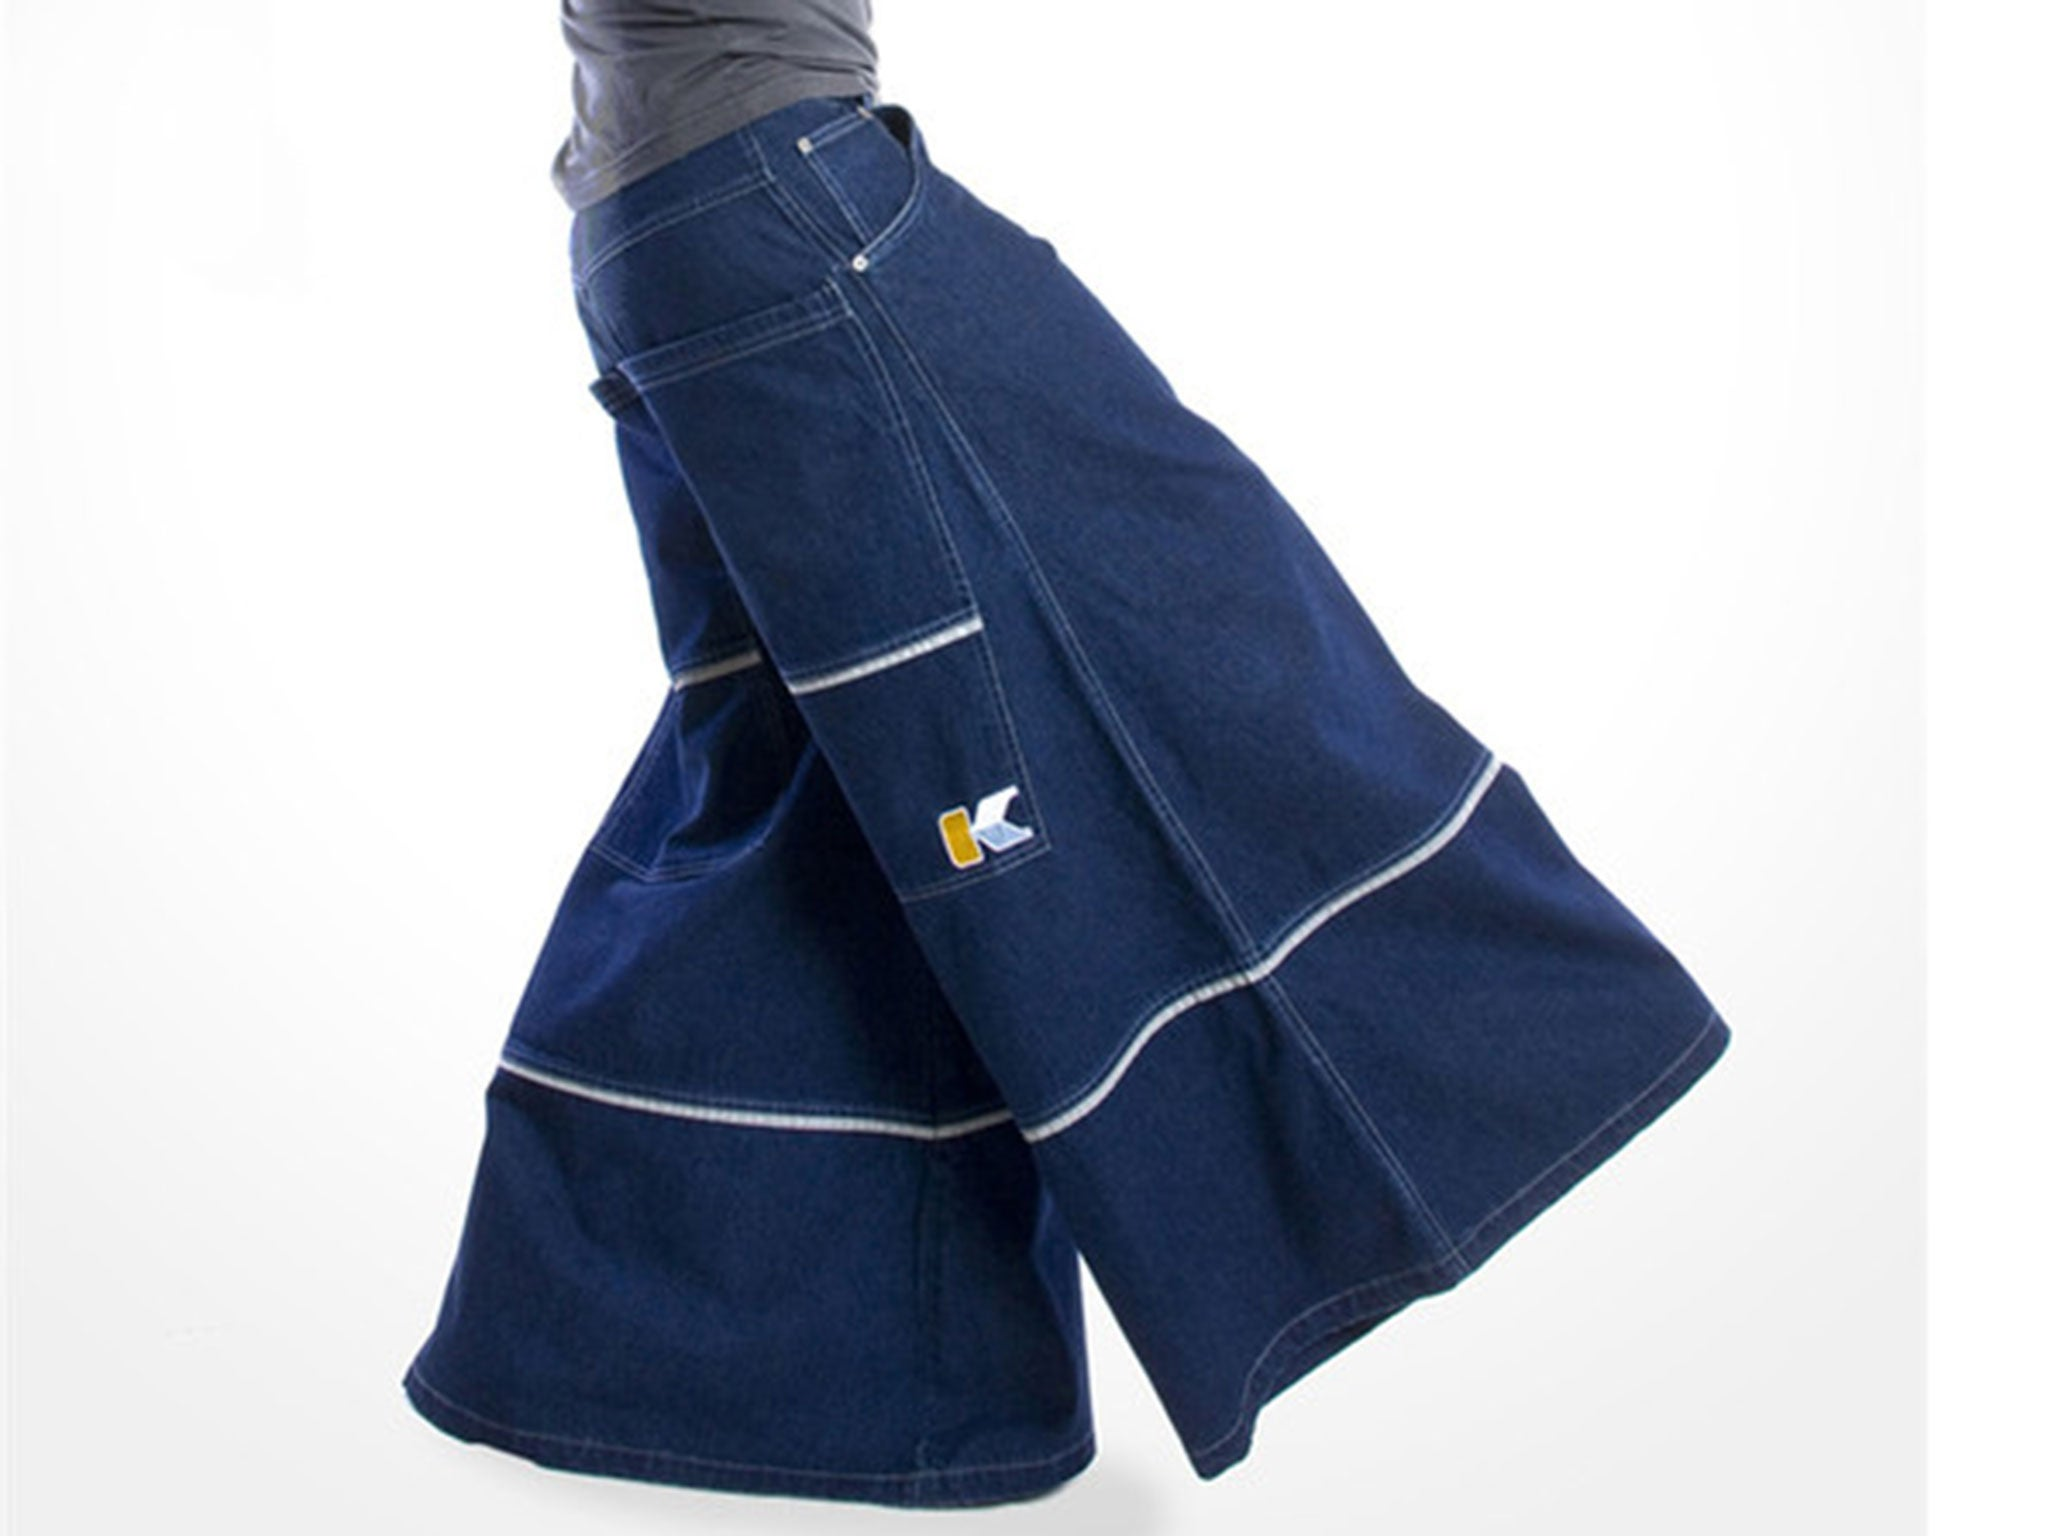 The popular JNCO jeans from the 90s are making a comeback and ...